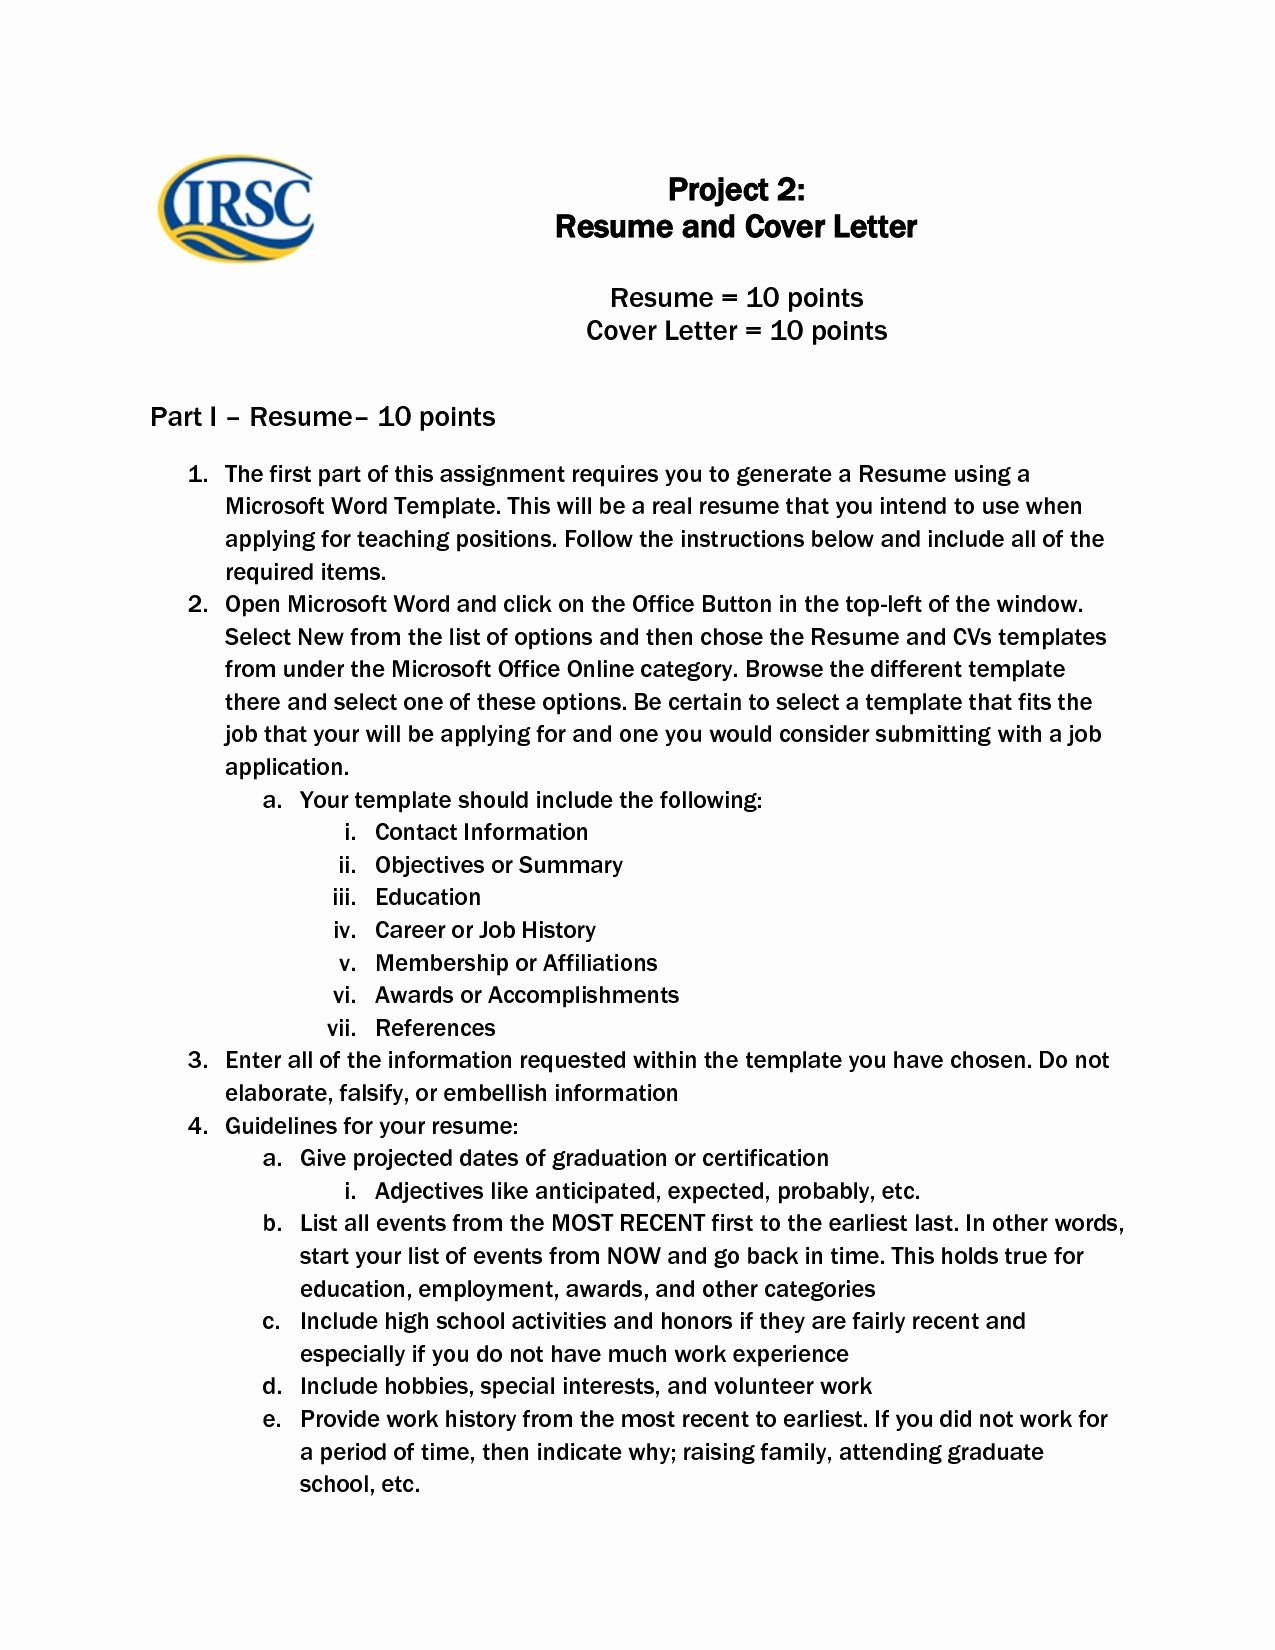 Resume and Cover Letter Templates New Resume Cover Letter Template 2017